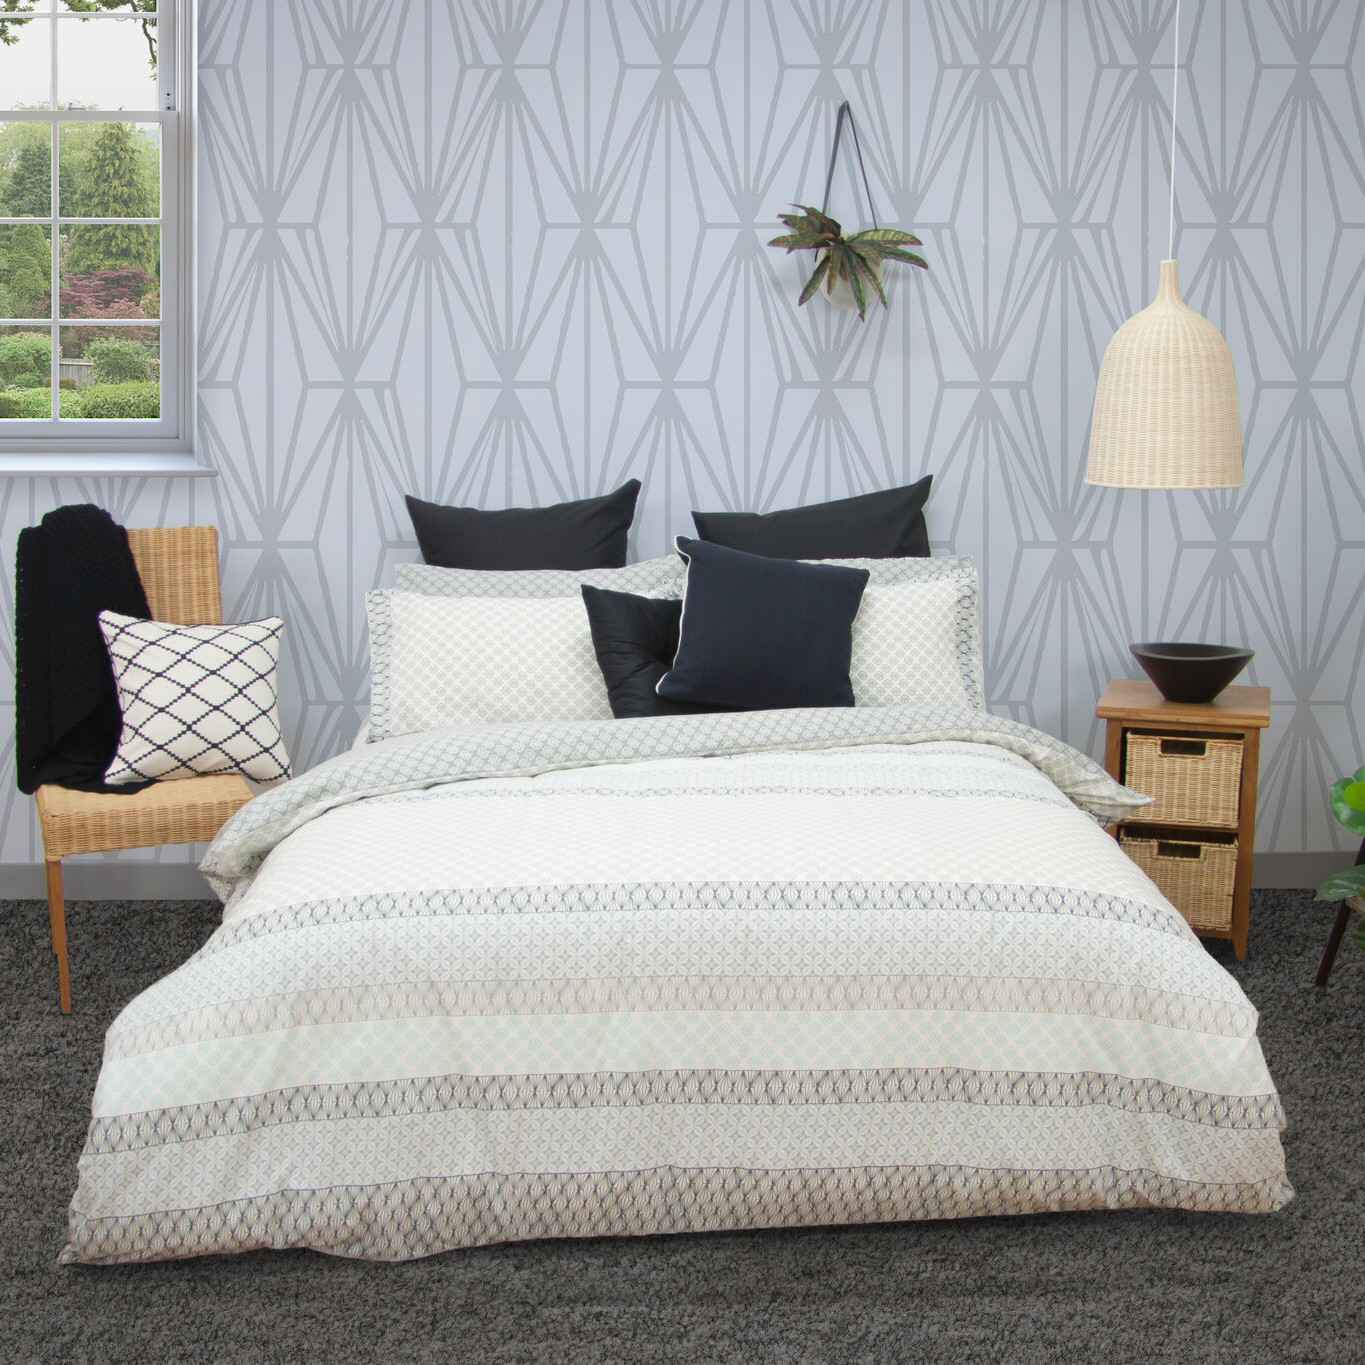 quilted duvet cover. SKU #APAR1069 Grey Inga Quilted Quilt Cover Set Is Also Sometimes Listed Under The Following Manufacturer Numbers: QS3933GRYKB, QS3933GRYQB Duvet